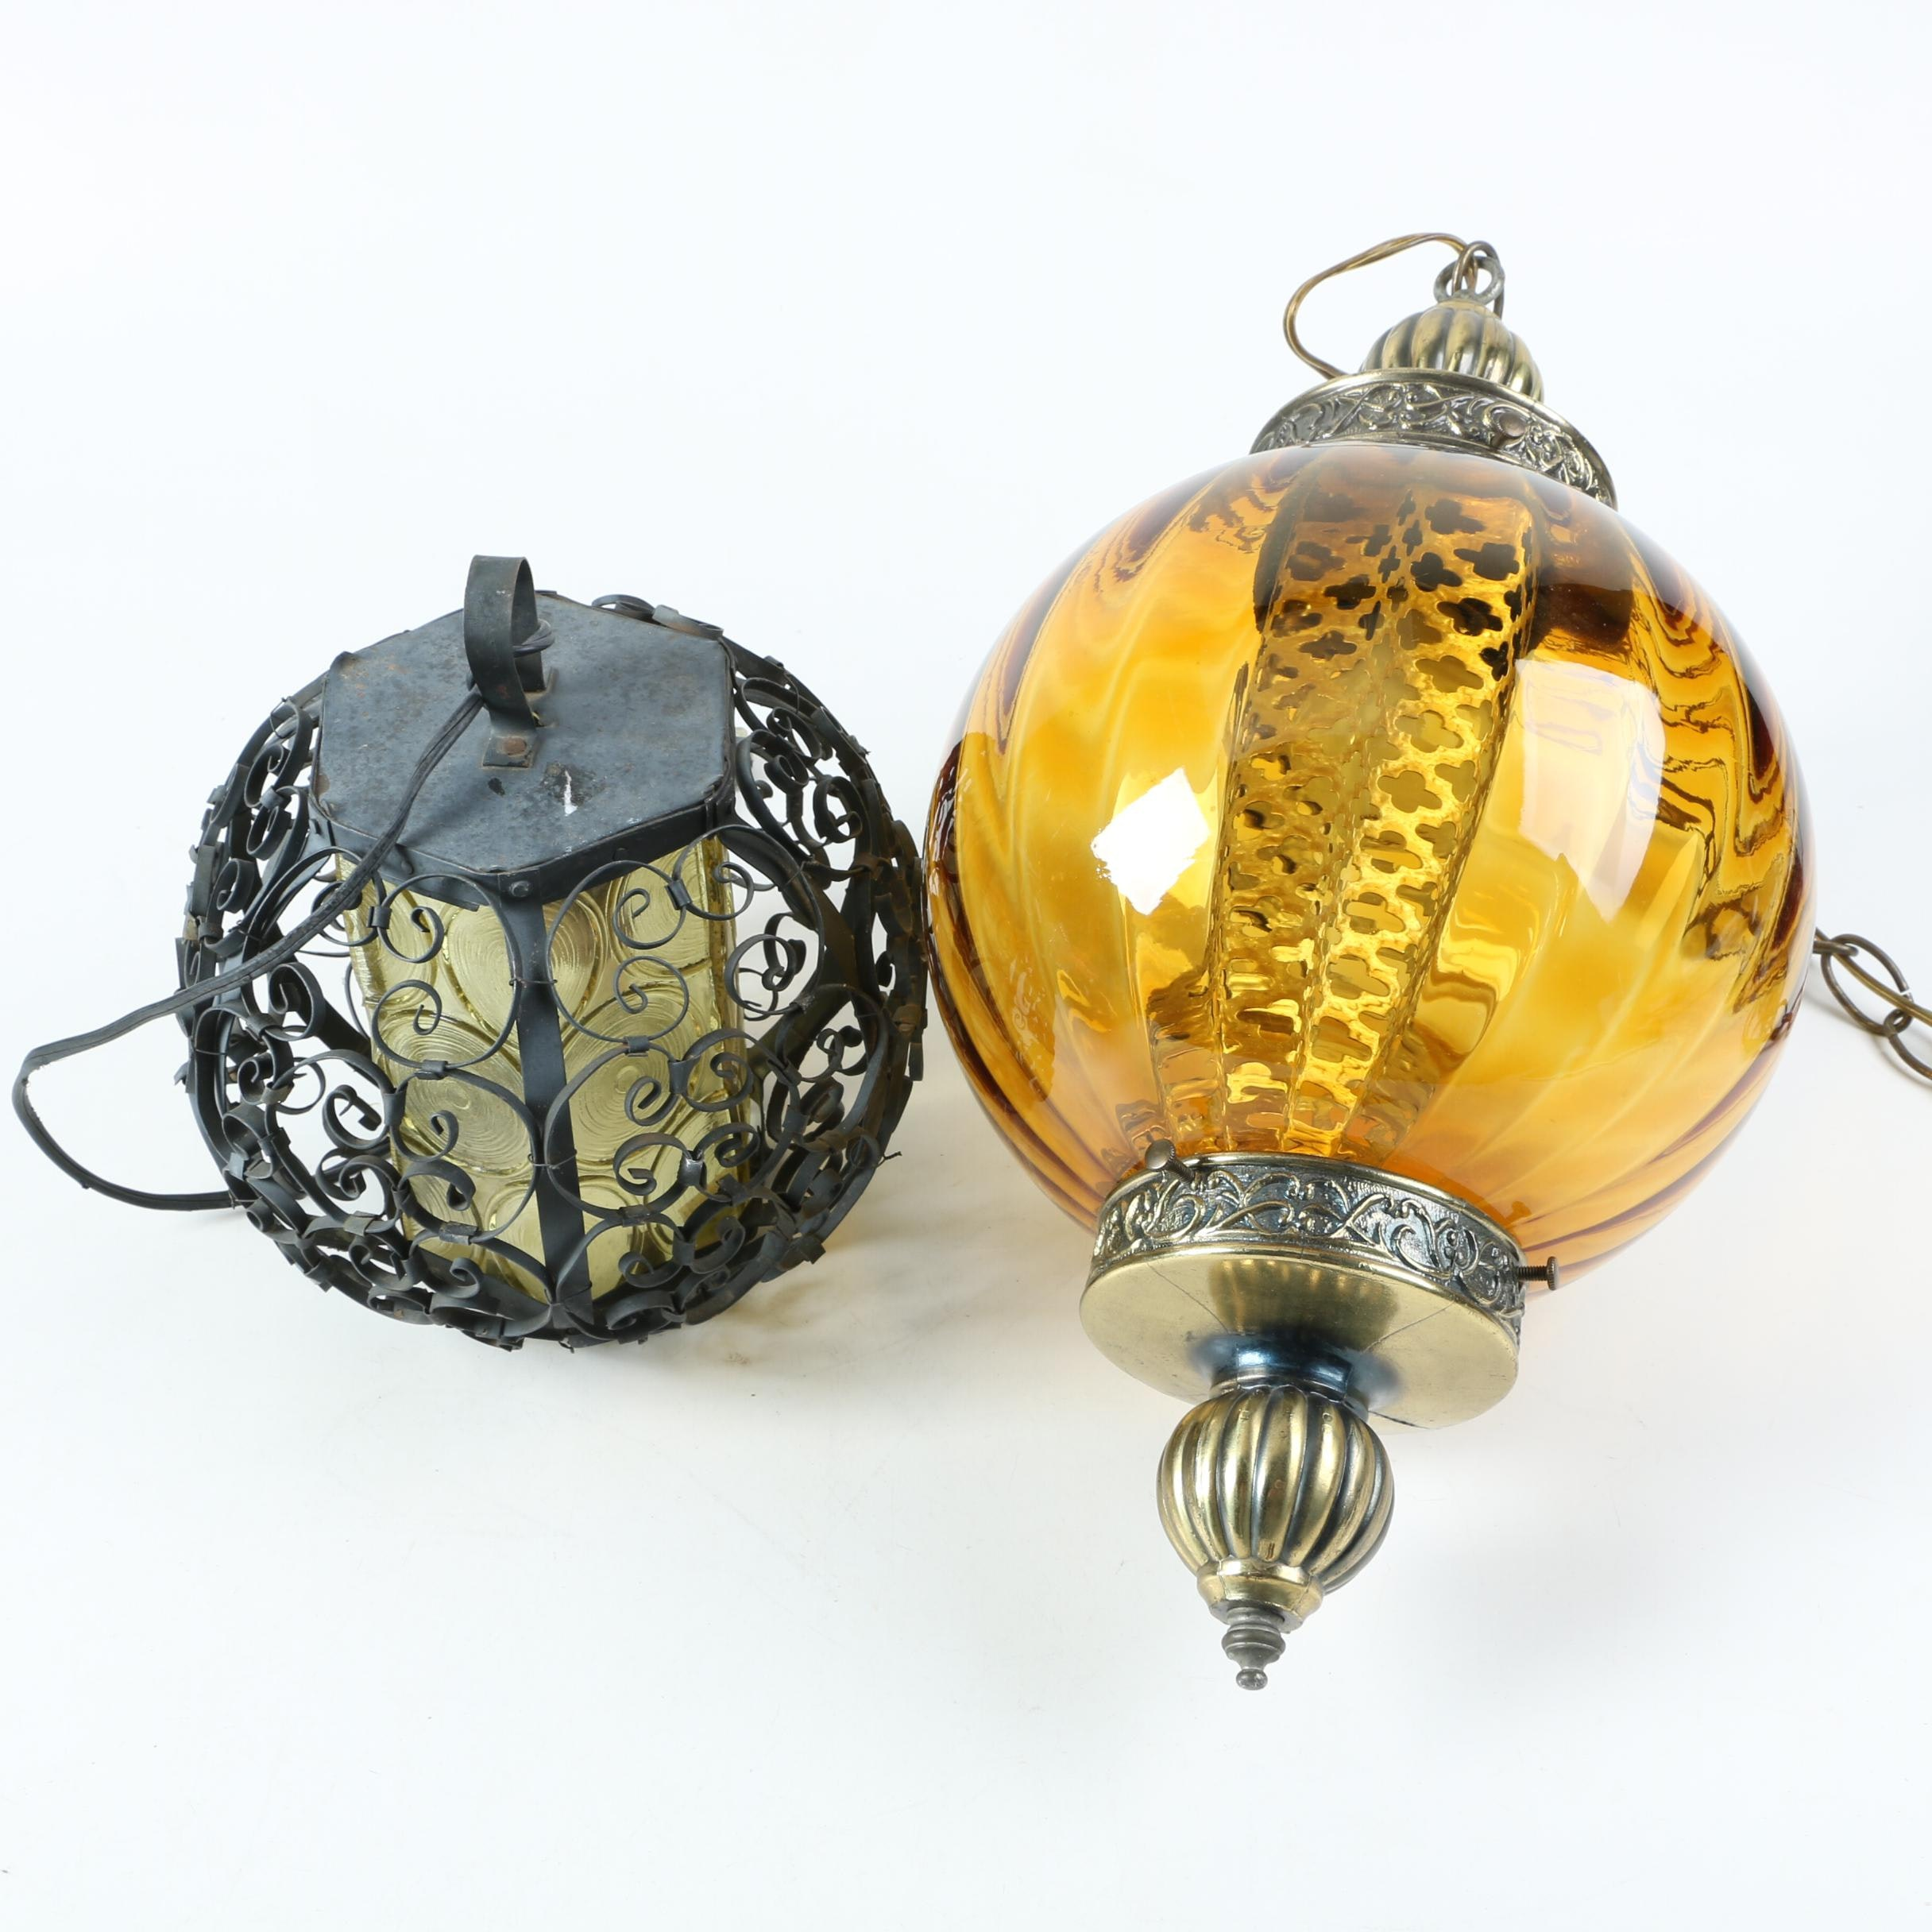 Moroccan Inspired and Wrought Iron Swag Lamps